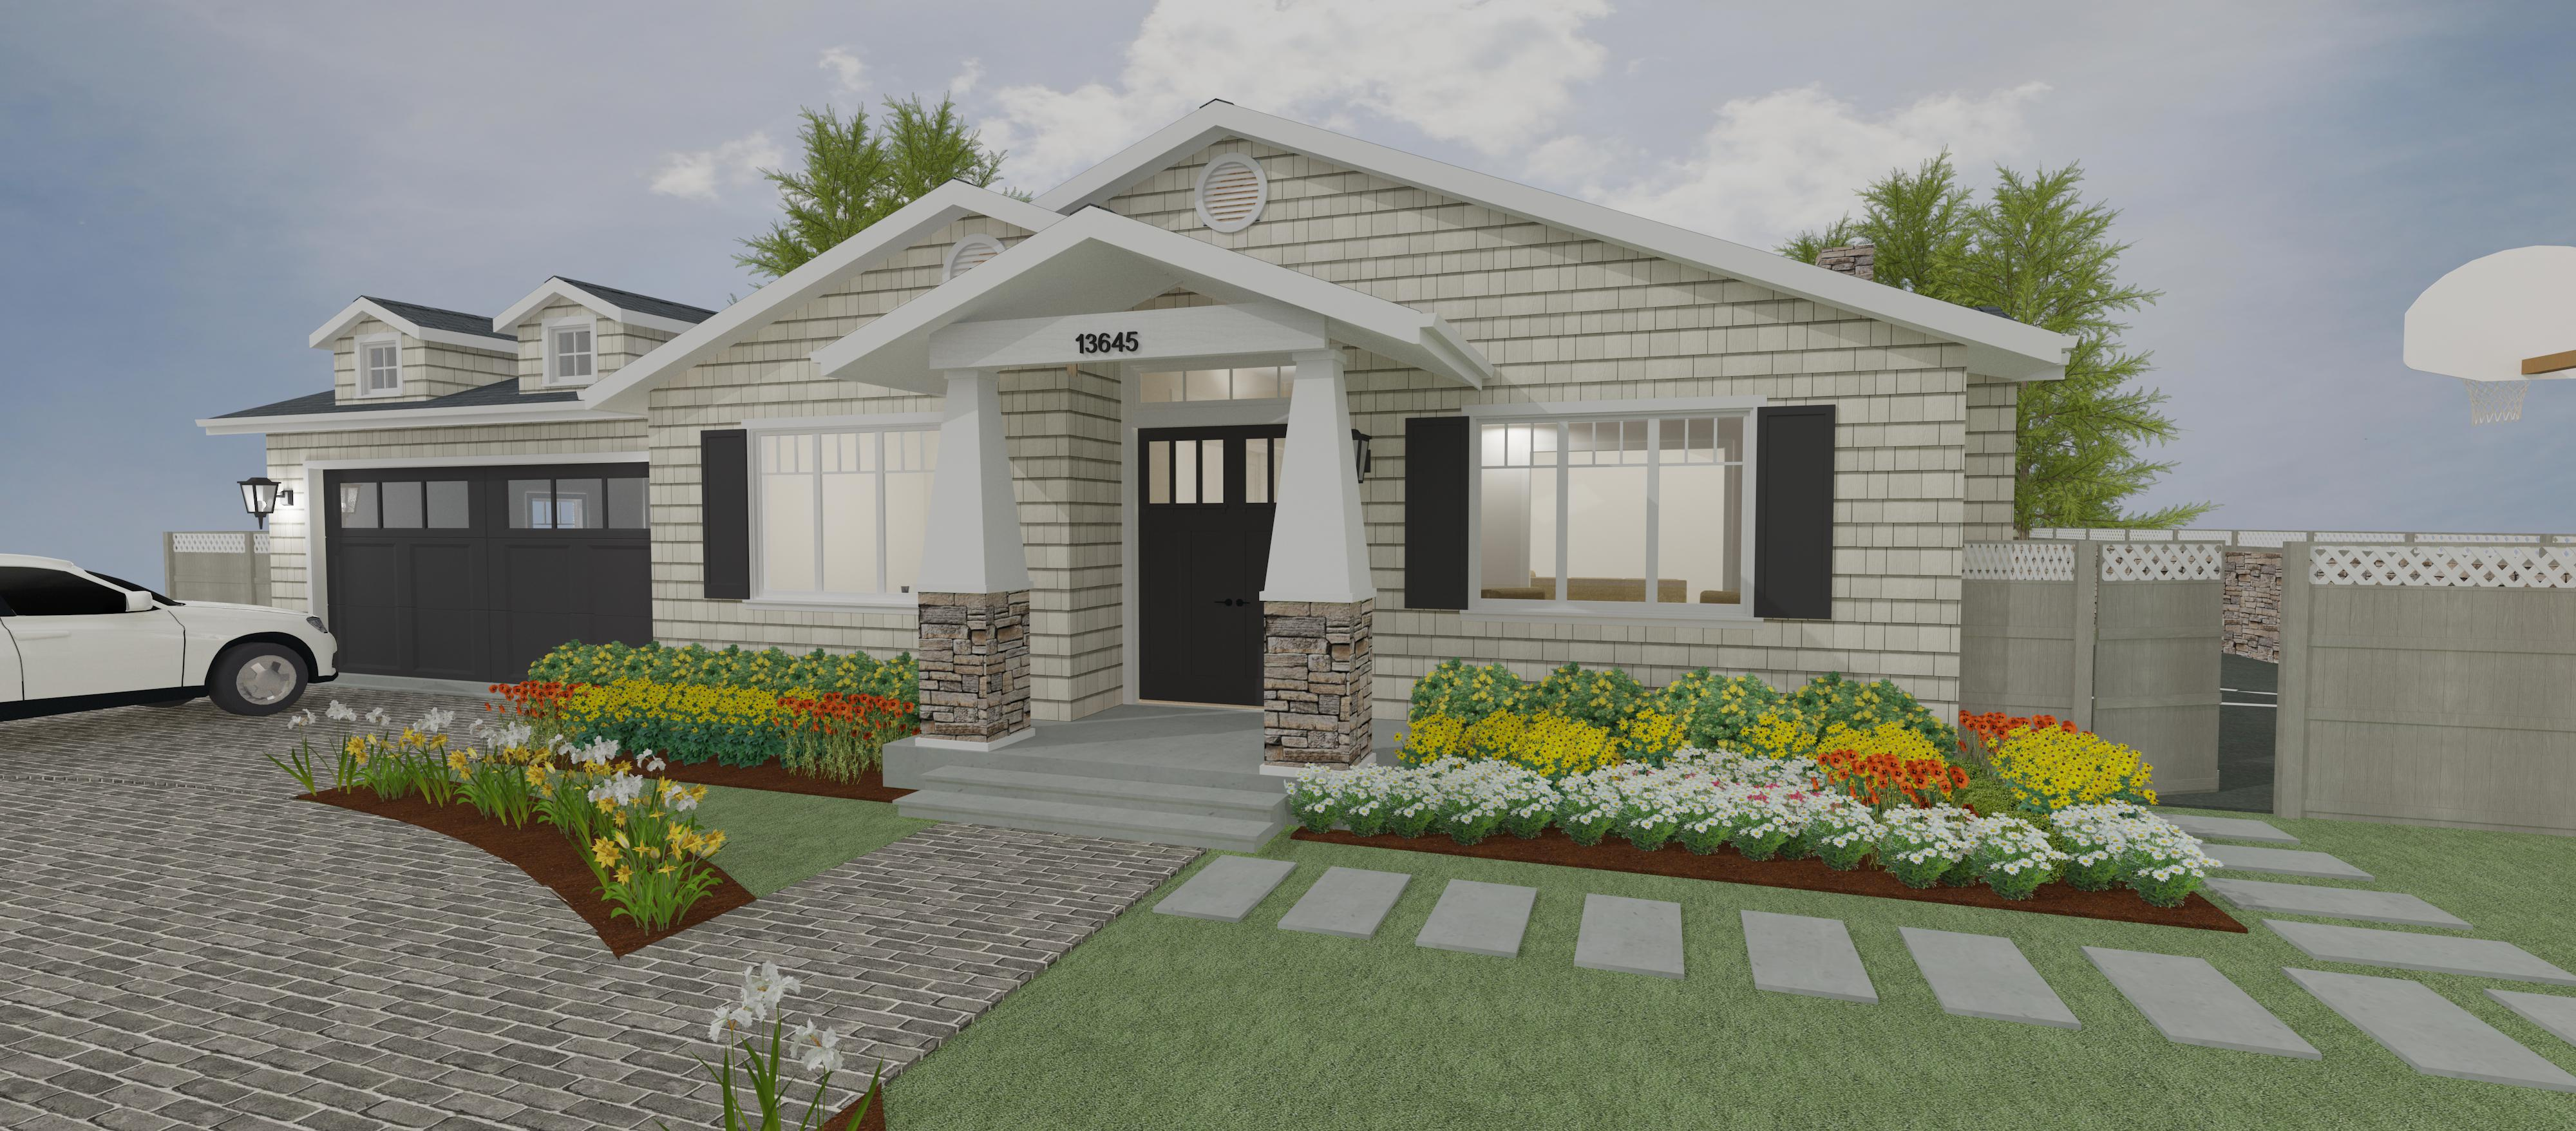 Proposed Front Exterior